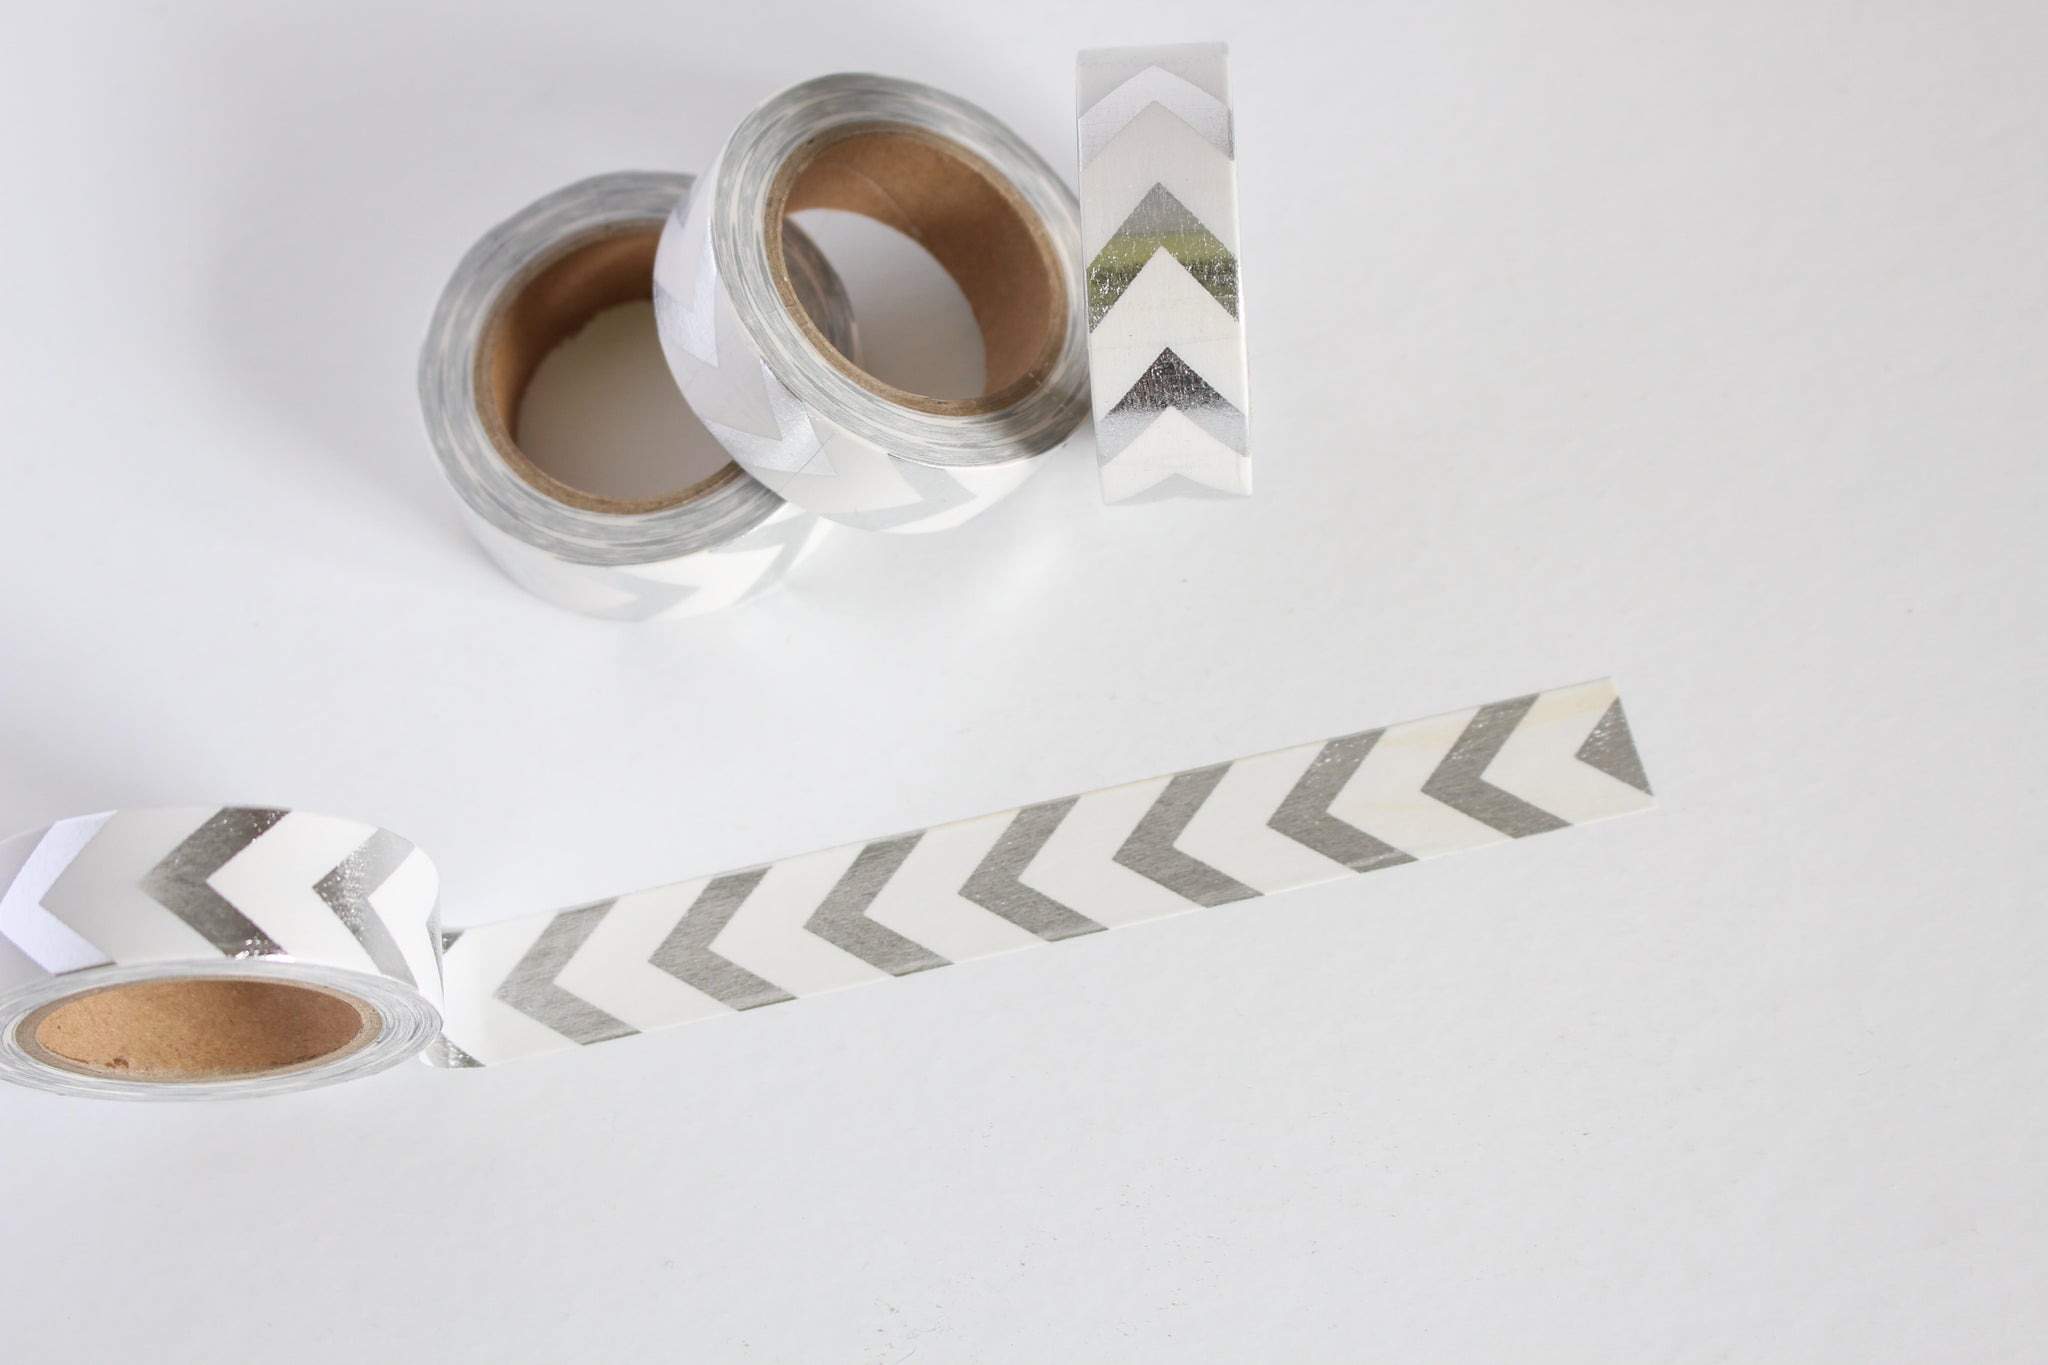 Silver foil and white chevron washi tape